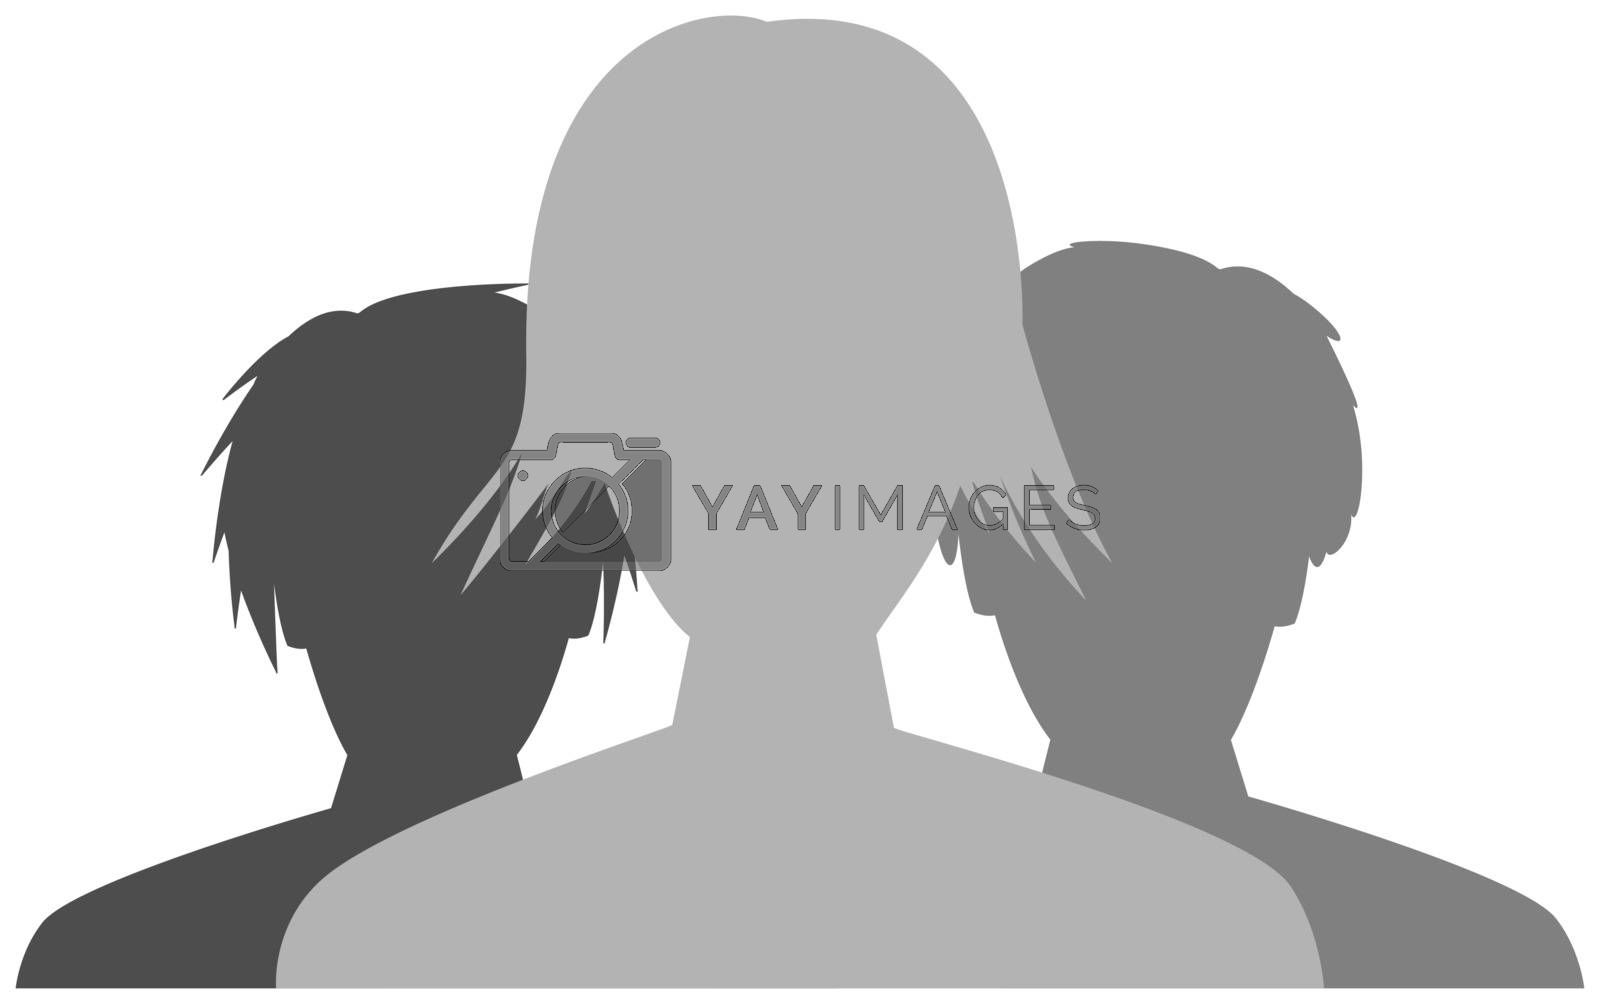 the silhoutte of team consists of three people